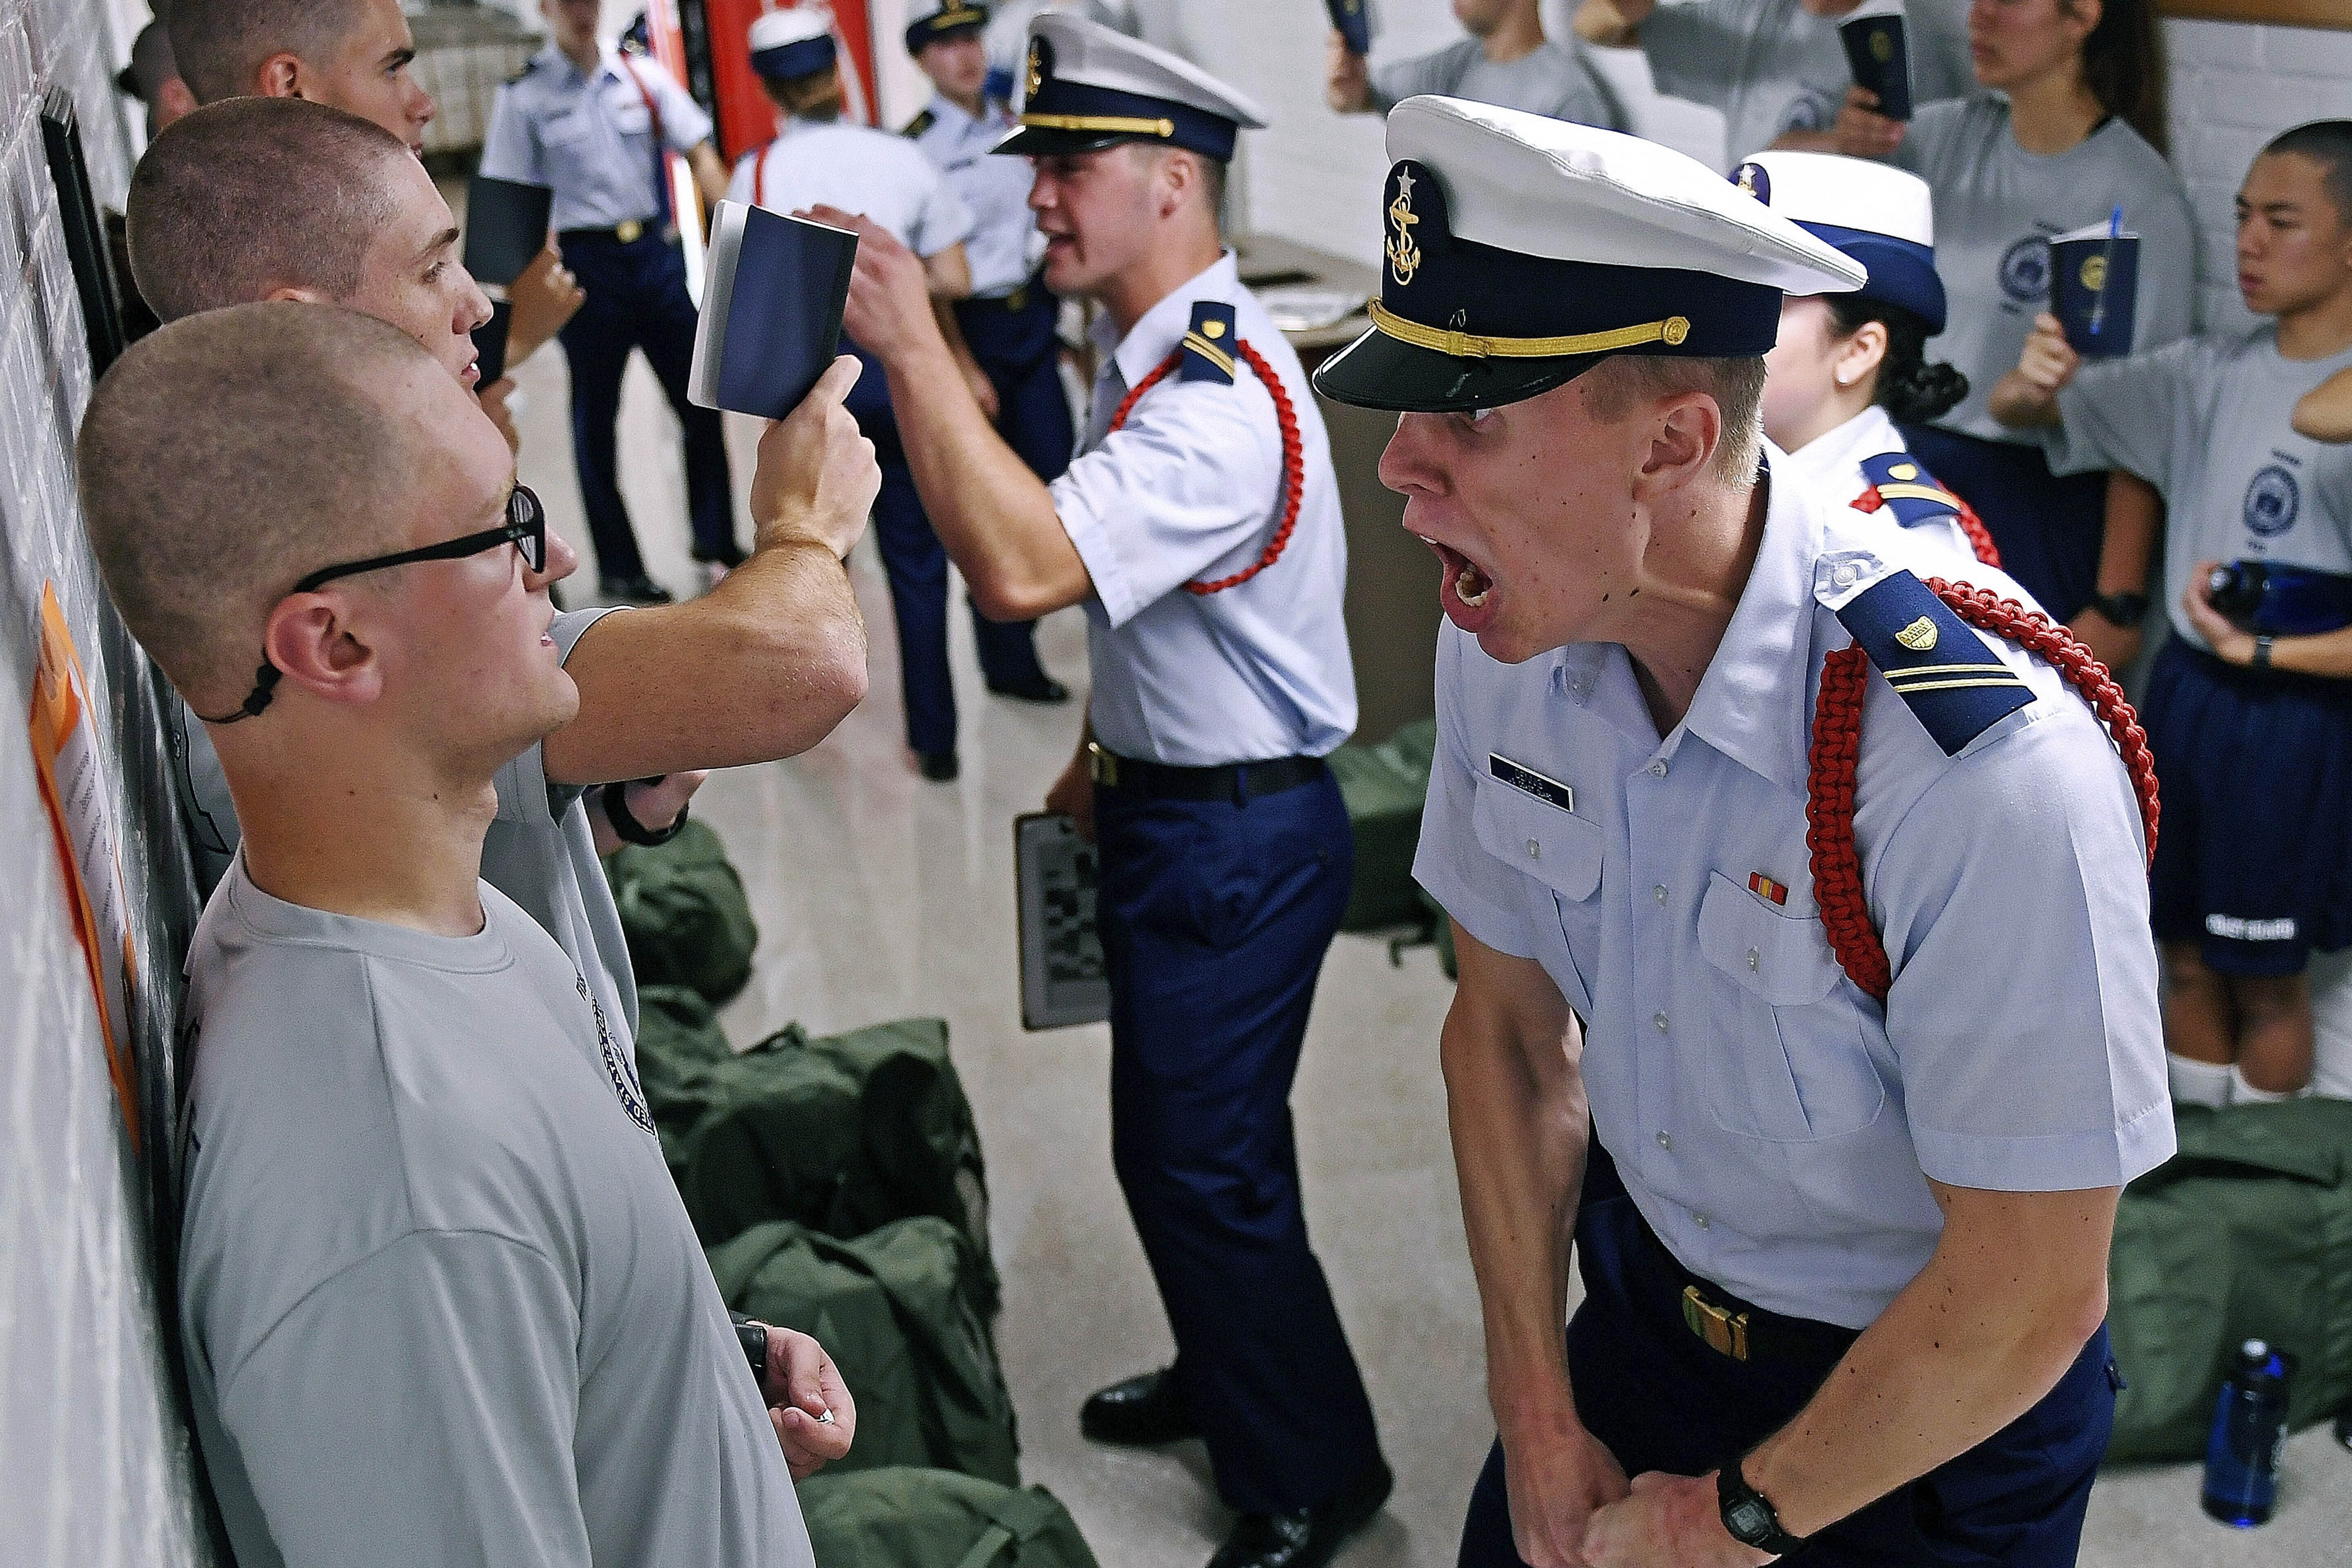 """FILE - In this July 1, 2019, file photo, Whisky 2 company Cadre Jacob Denns, right, shouts instructions to swab Nicolas Fisher, left, of Pelham, N.H., on the first day of a seven-week indoctrination to military academy life for the Class of 2023 at the U.S. Coast Guard Academy in New London, Conn. The school, like other service academies and military training centers, has made major changes because of the coronavirus pandemic. That means the eight weeks of boot camp for new cadets, known as """"Swab Summer,"""" will be much different. There will be no haircuts, no drilling, no running as a group from place to place, no lining up against the wall in the hall of the barracks for pushups. (Sean D. Elliot/The Day via AP, File)"""